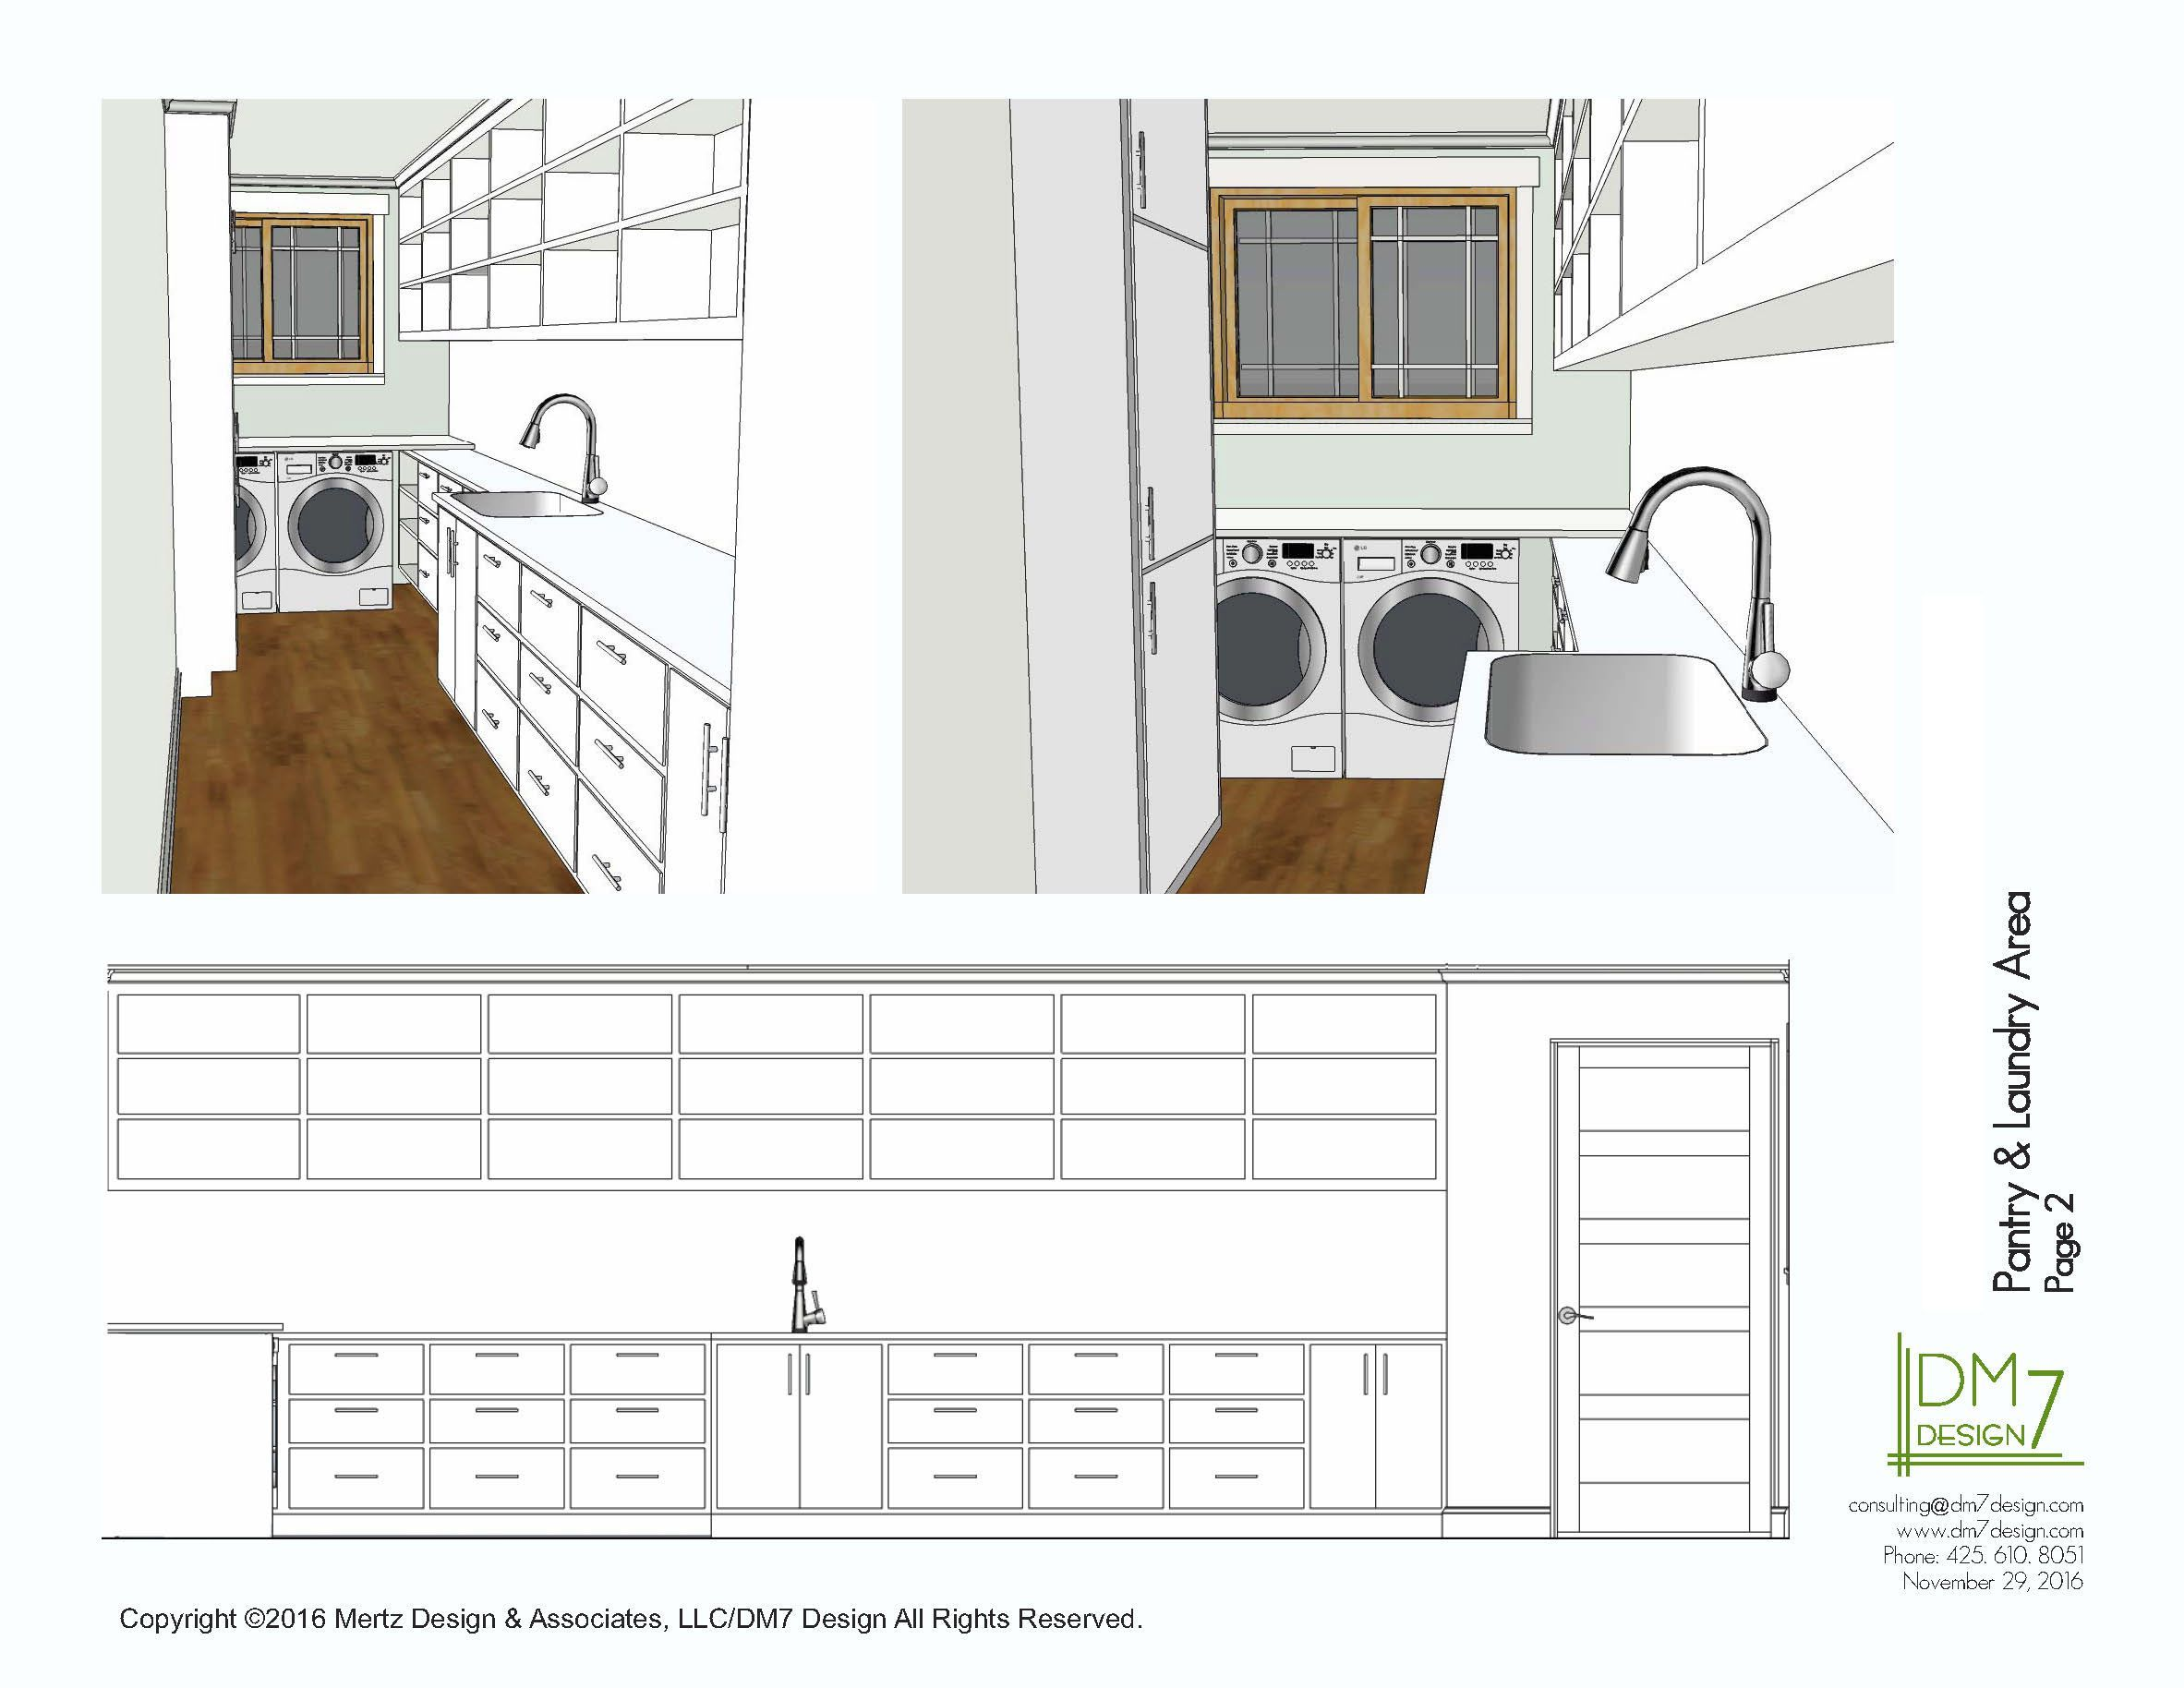 Updated laundry and pantry in a long narrow space. Concept ... on house plans with corner sink, house plans with 10 foot ceilings, house plans with sunken living room, house plans with half bath, house plans with great room, house plans with 2 living areas, house plans with larder, house plans with sunken family room, house plans with handicap access, house plans with widow walk, house plans with front veranda, house plans with wall of windows, house plans with split floor plan, house plans with upstairs living, house plans with computer nook, house plans with secret passage, house plans with first floor master, house plans with 6 rooms, house plans with 2 master bathrooms, house plans with computer area,